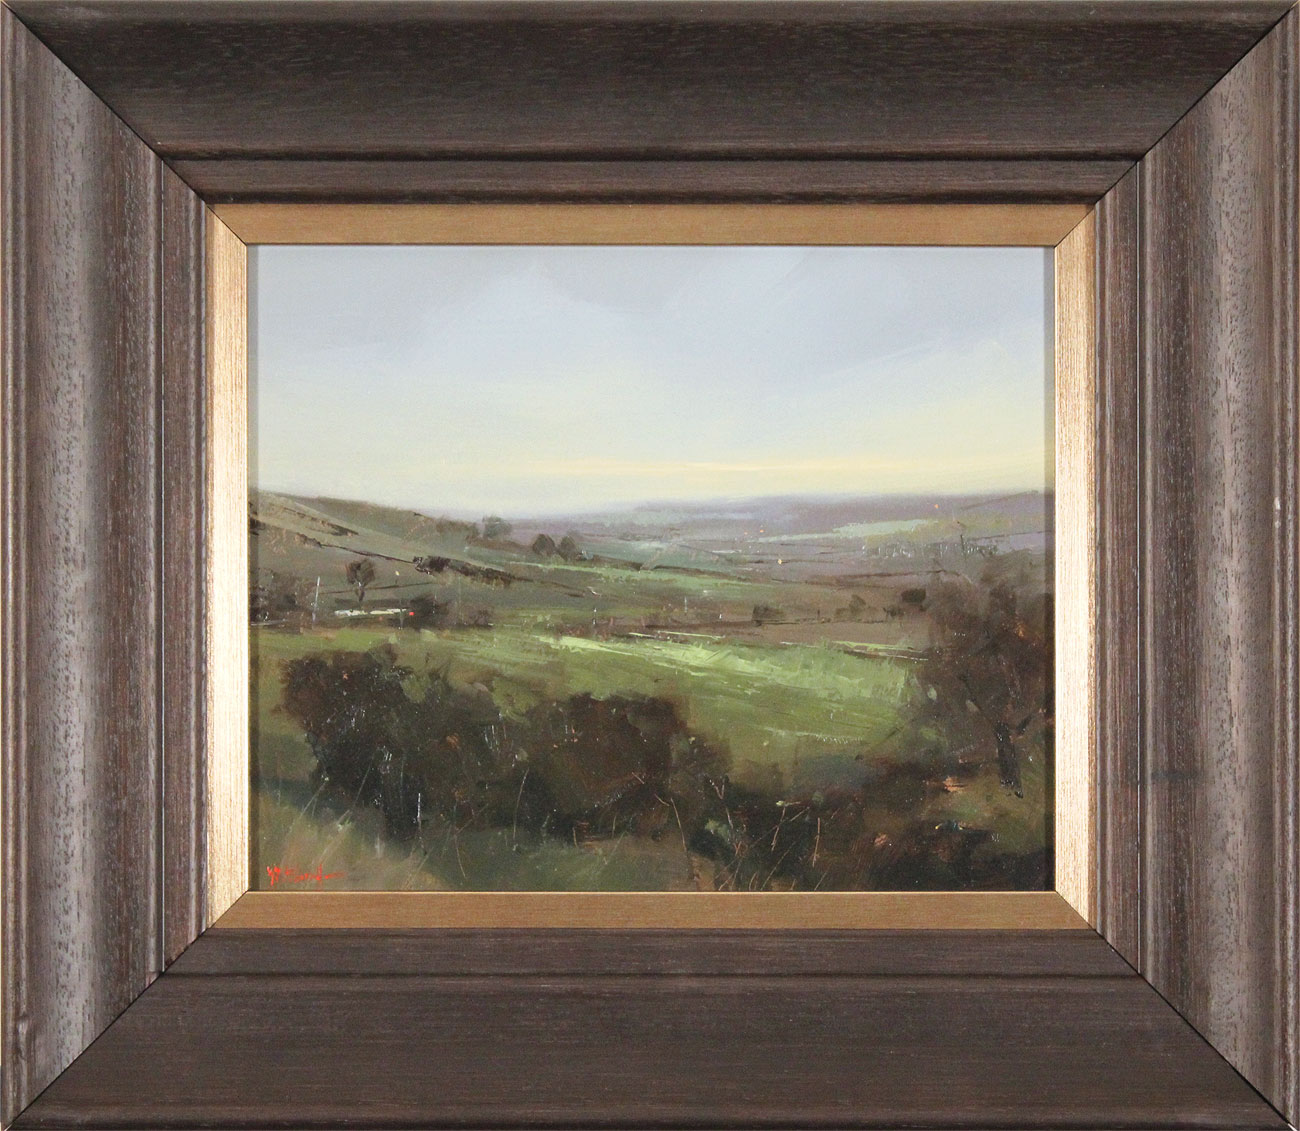 Michael John Ashcroft, ROI, Original oil painting on panel, A Distant Harrogate, click to enlarge